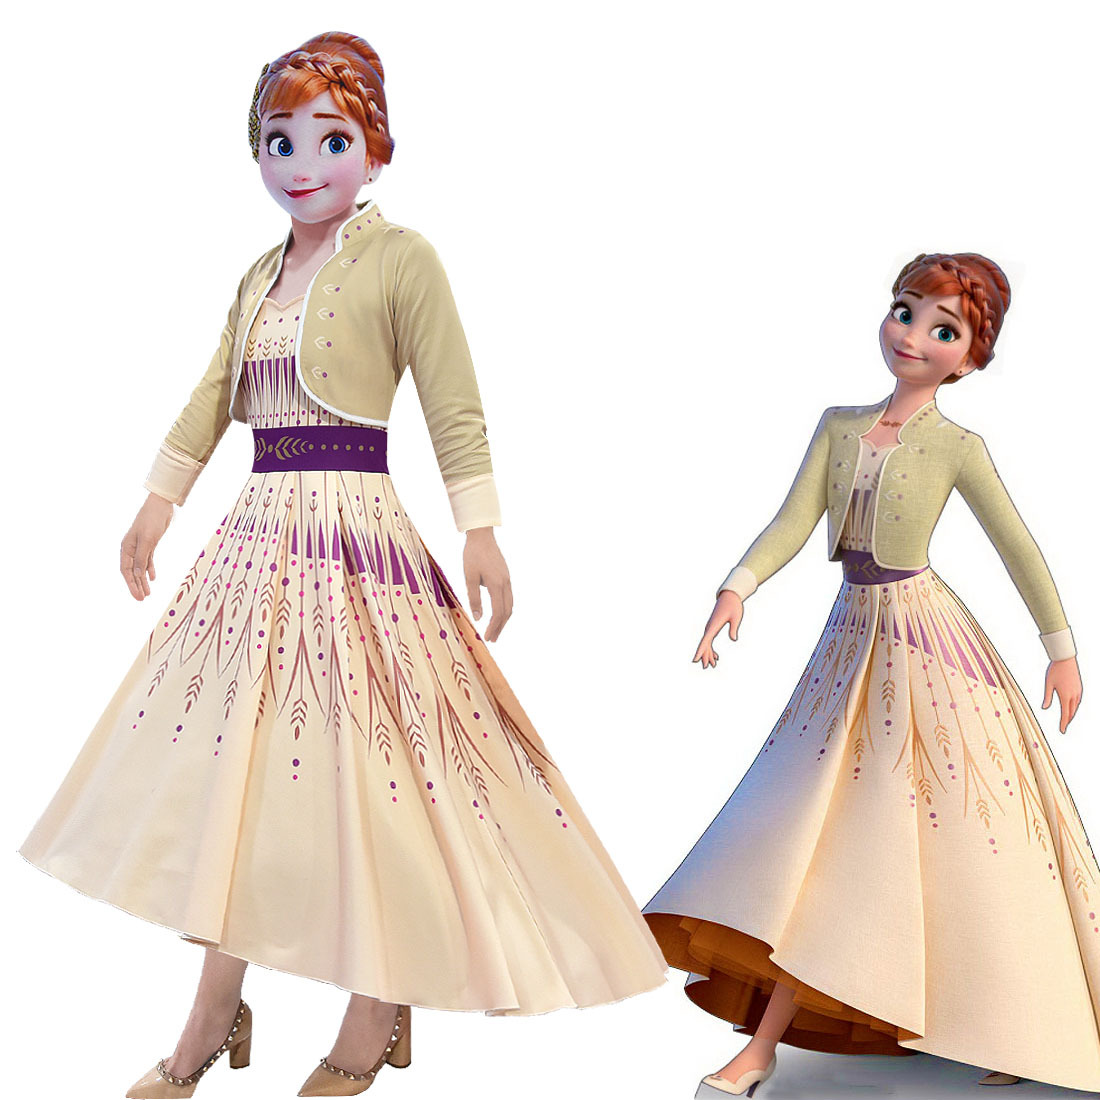 Frozen 2 Queen Anna Dress Cosplay Costumes For Kid Girls Party Princess Vestidos Child Clothing Dress/Wig/Bag/Mask /Crown C92K08